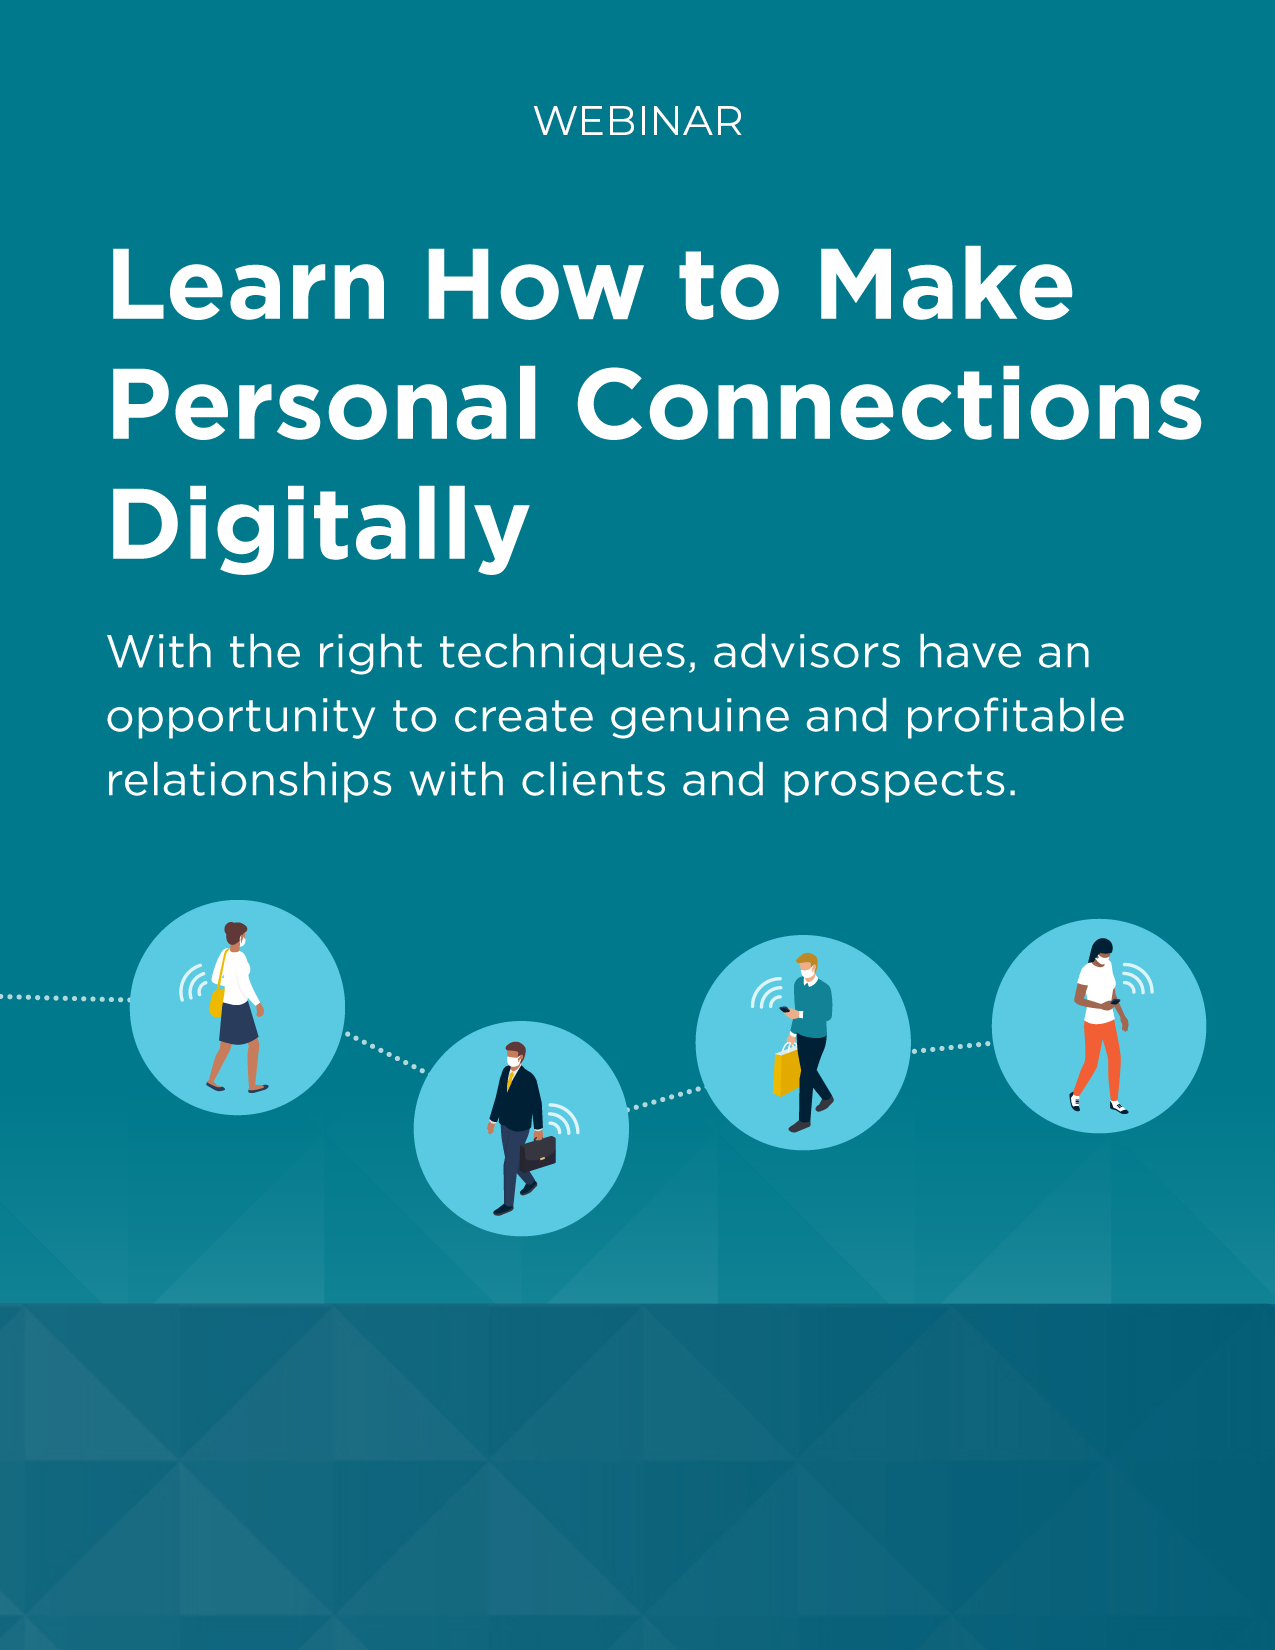 Making Personal Connections Digitally